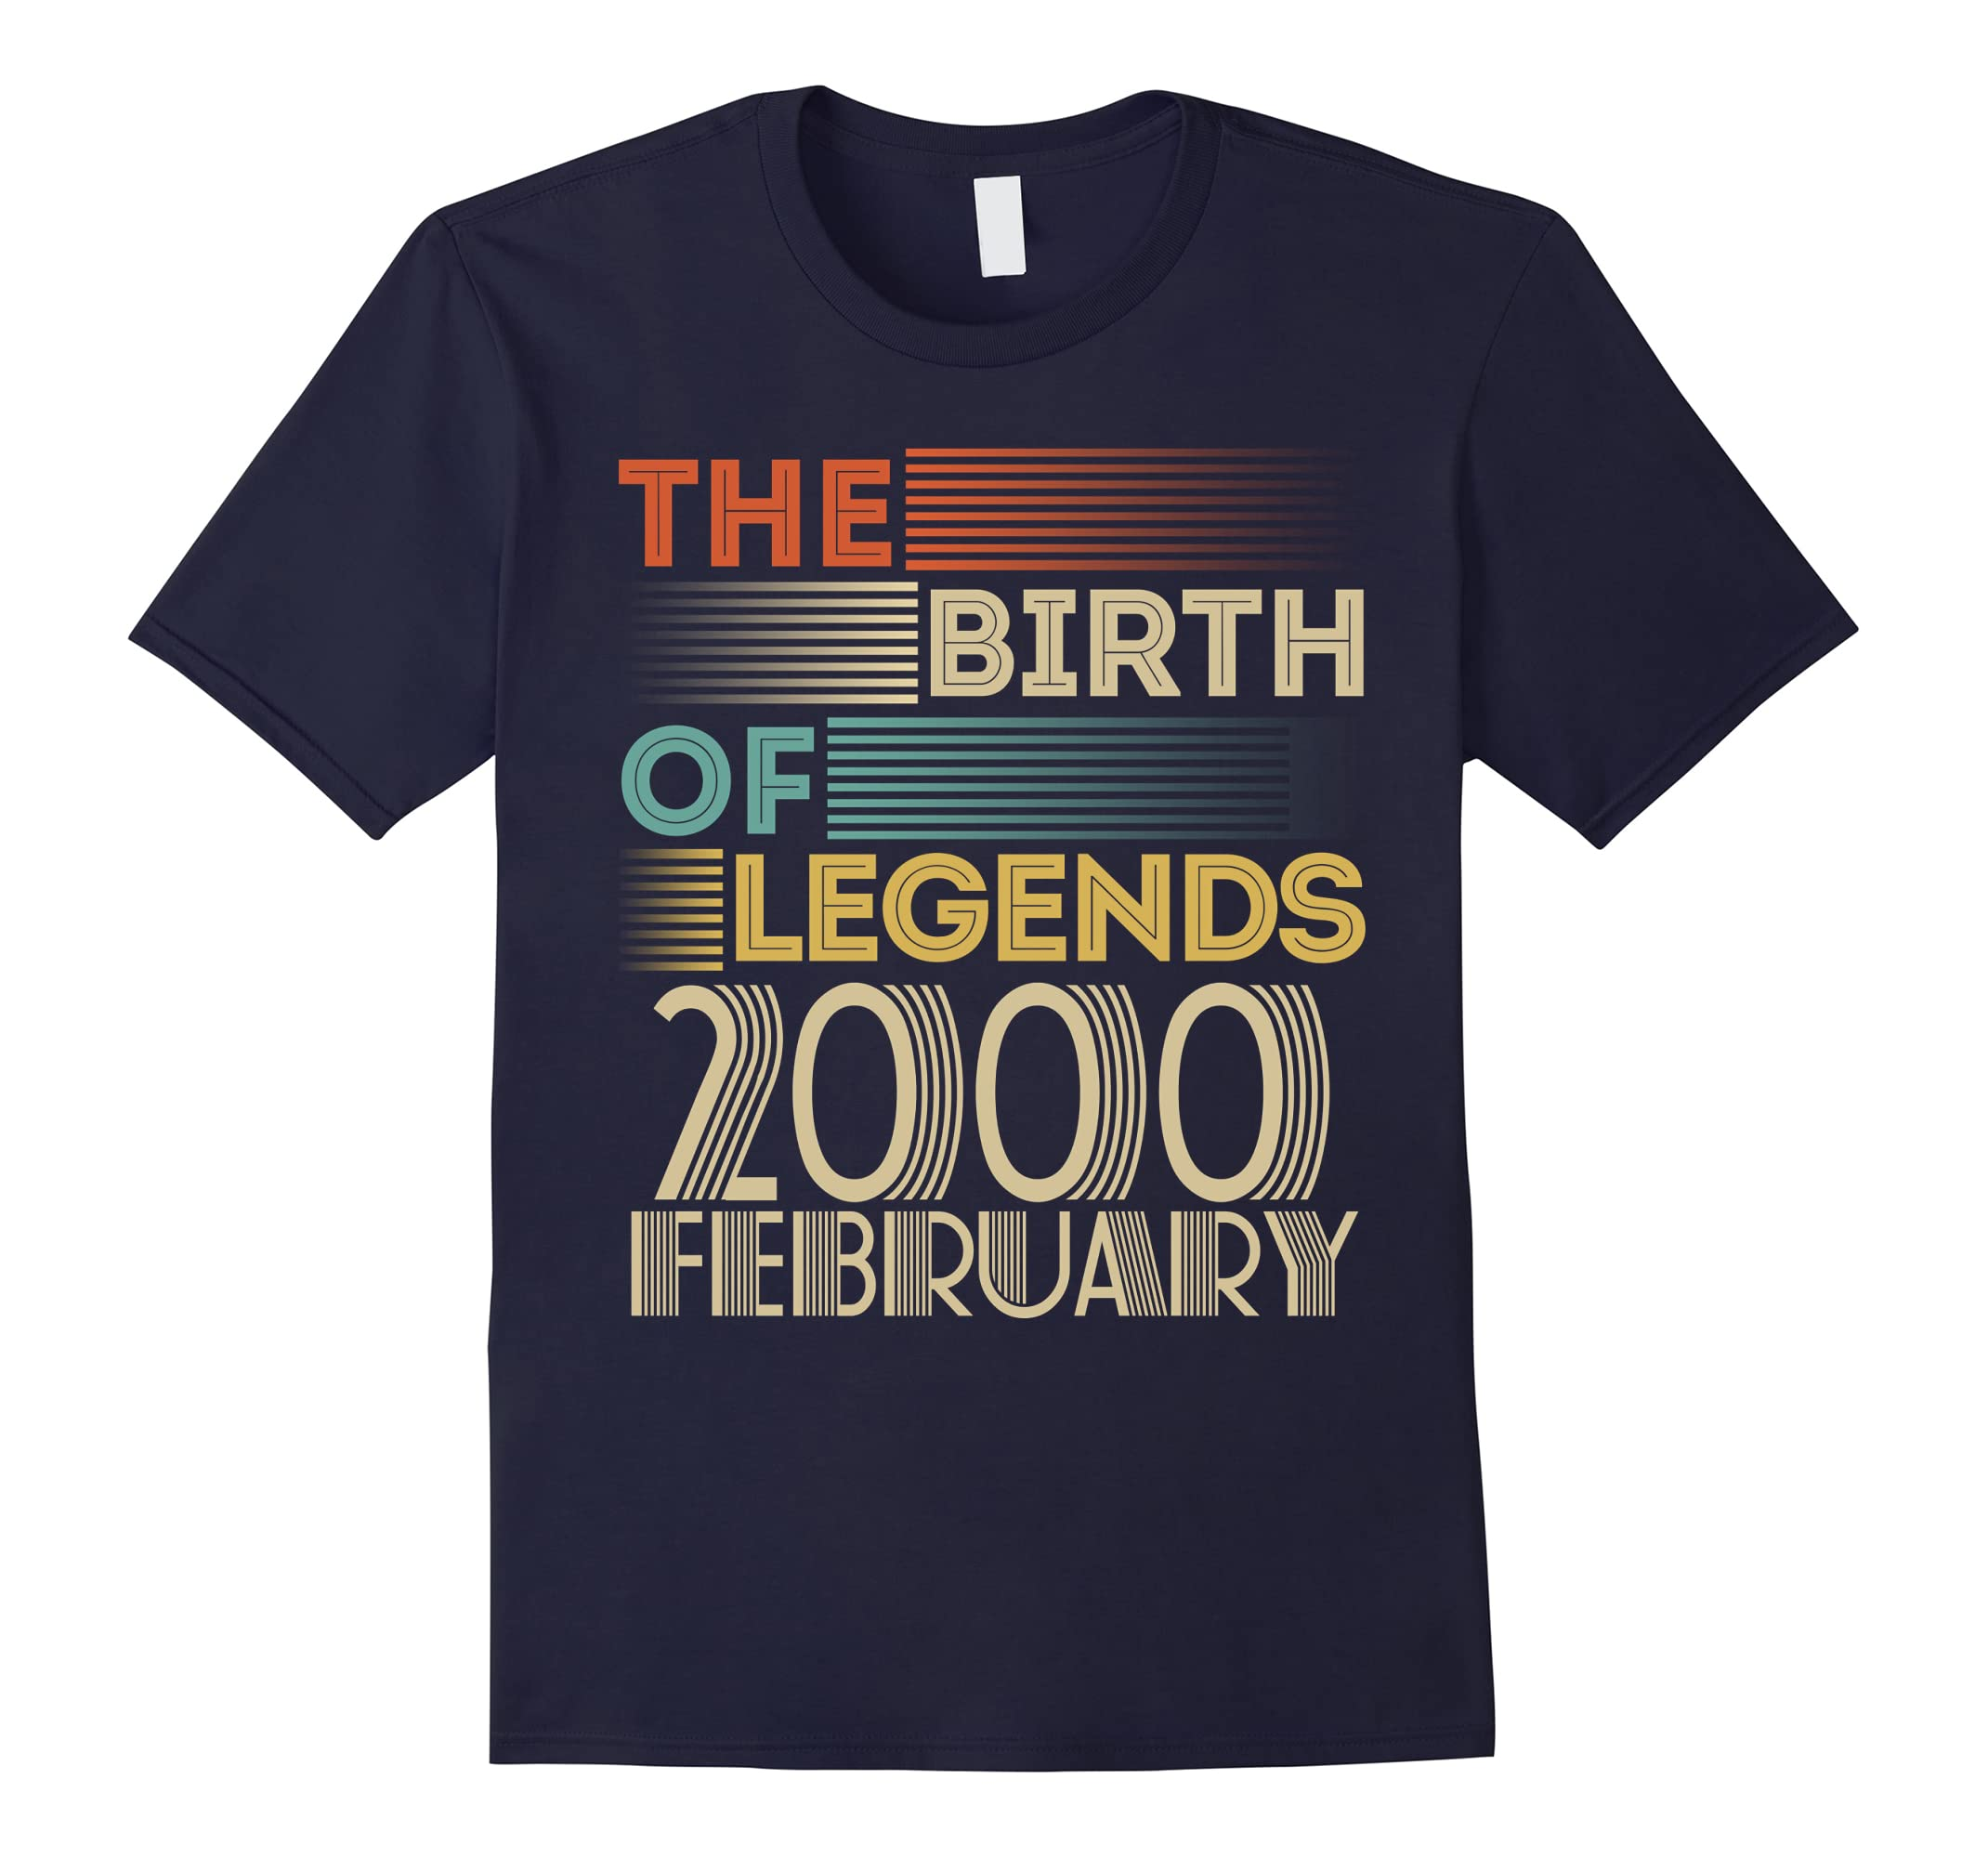 2000 FEBRUARY Vintage The Birth Of Legends 18 Yrs Years Old-ah my shirt one gift